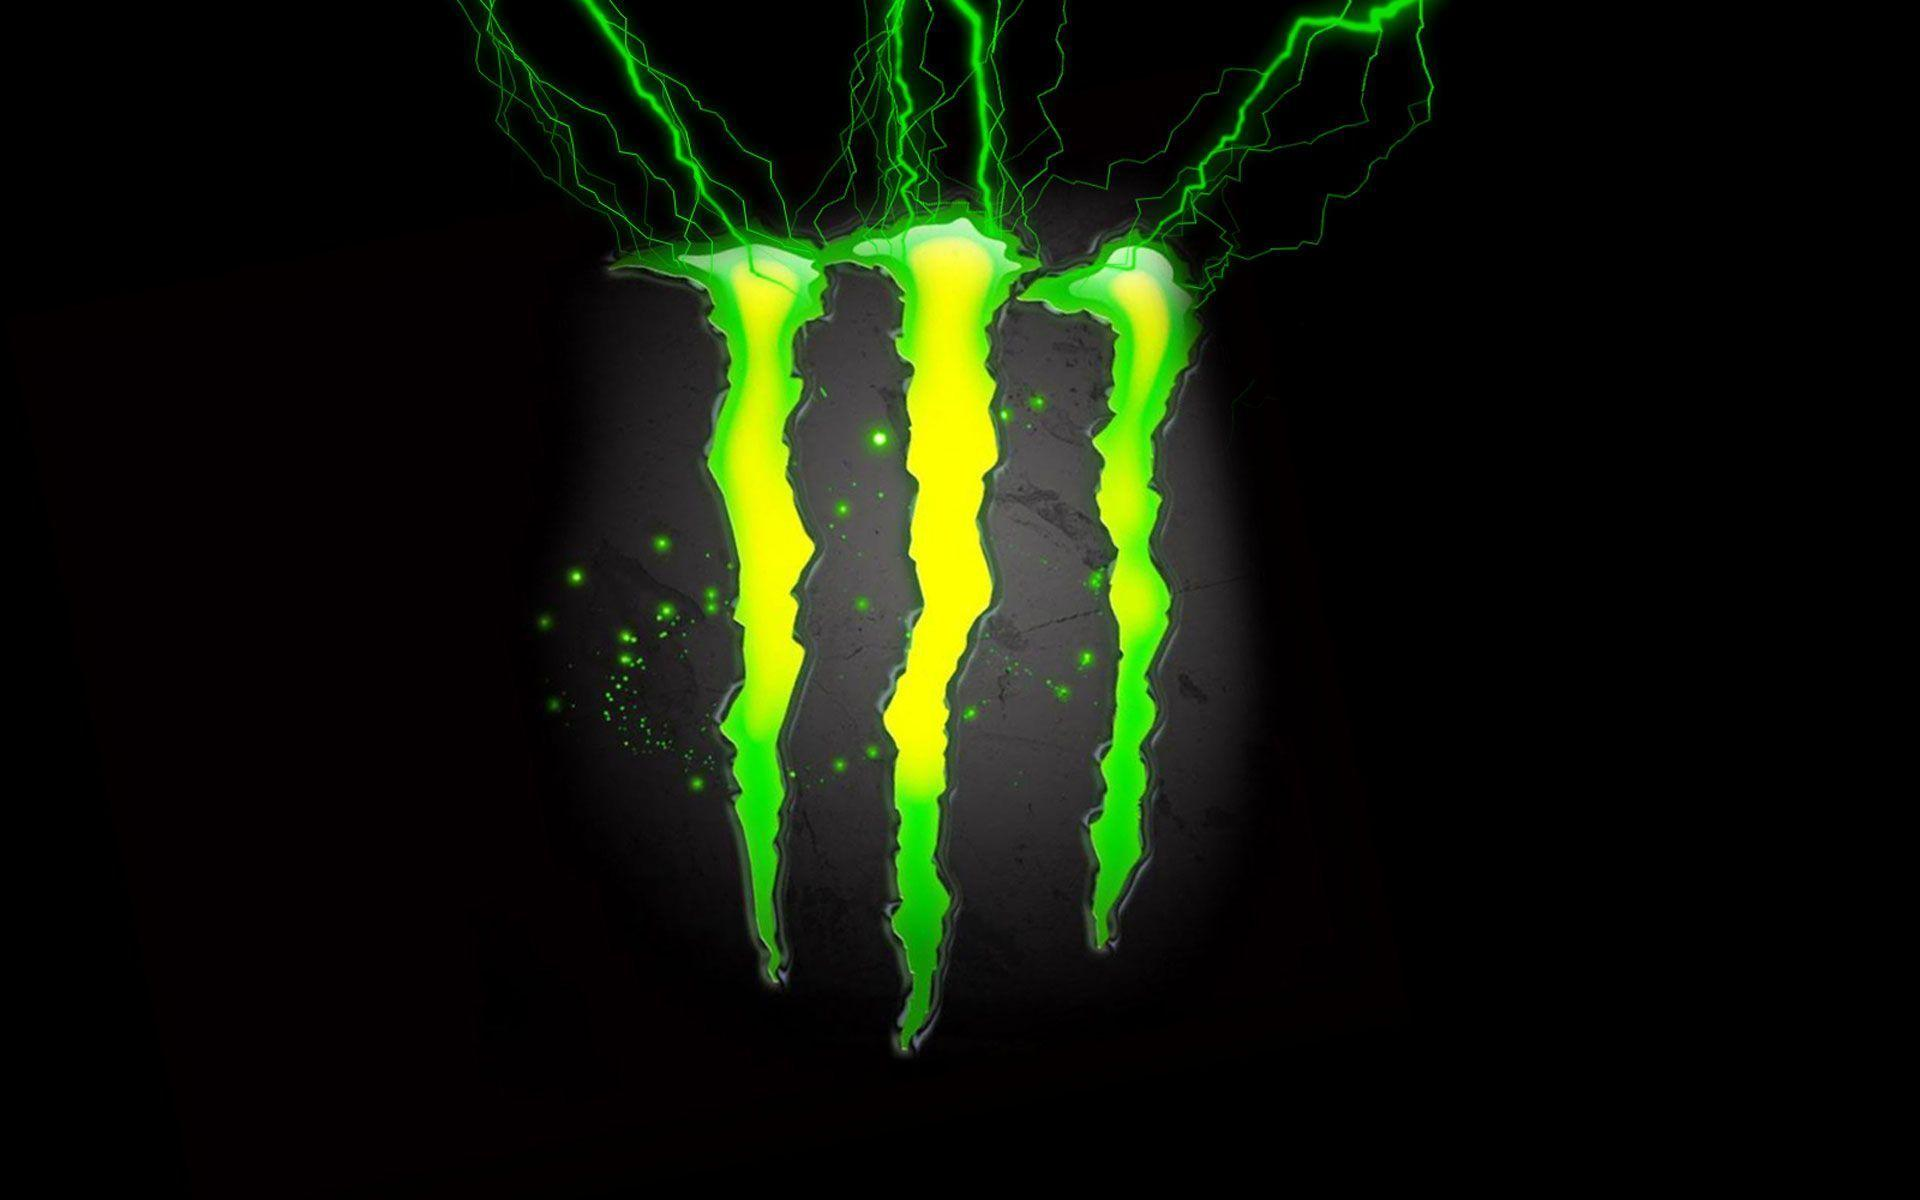 F1 Car Monster Energy Wallpaper Hd: Monster Energy Wallpapers HD 2015